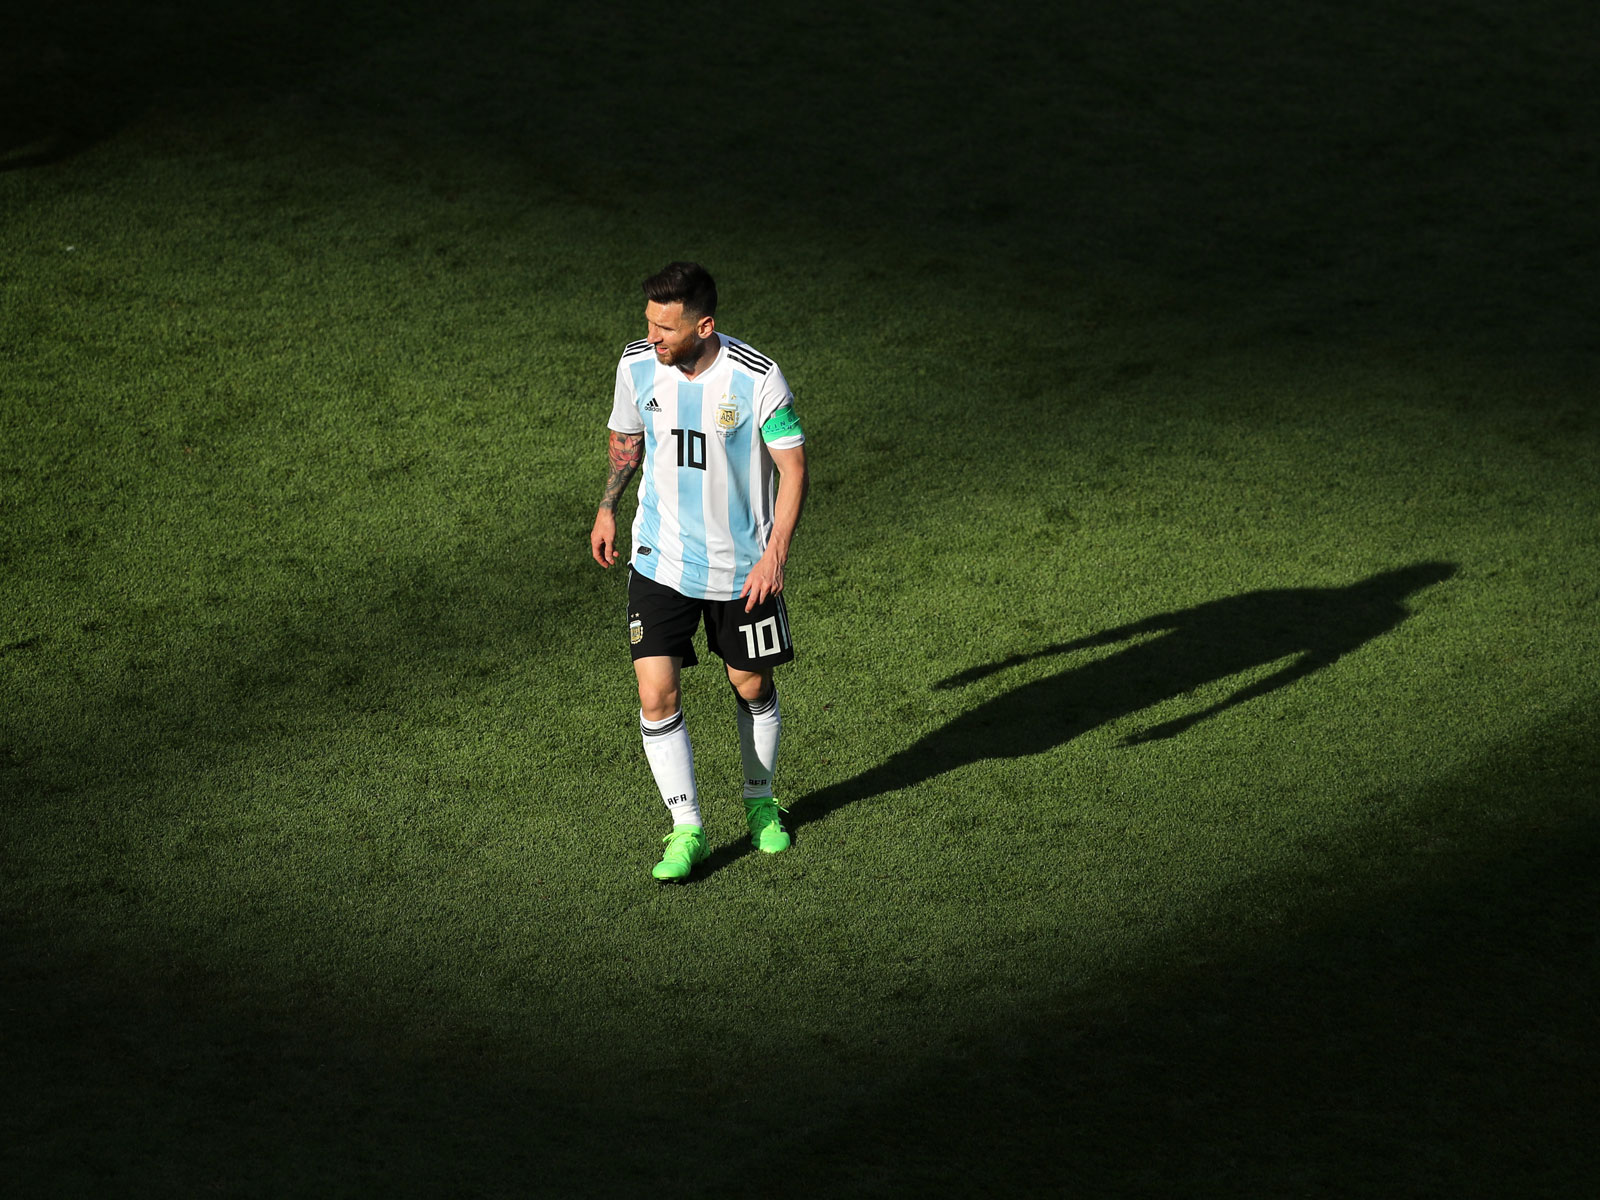 Lionel Messi and Argentina were eliminated in the World Cup round of 16